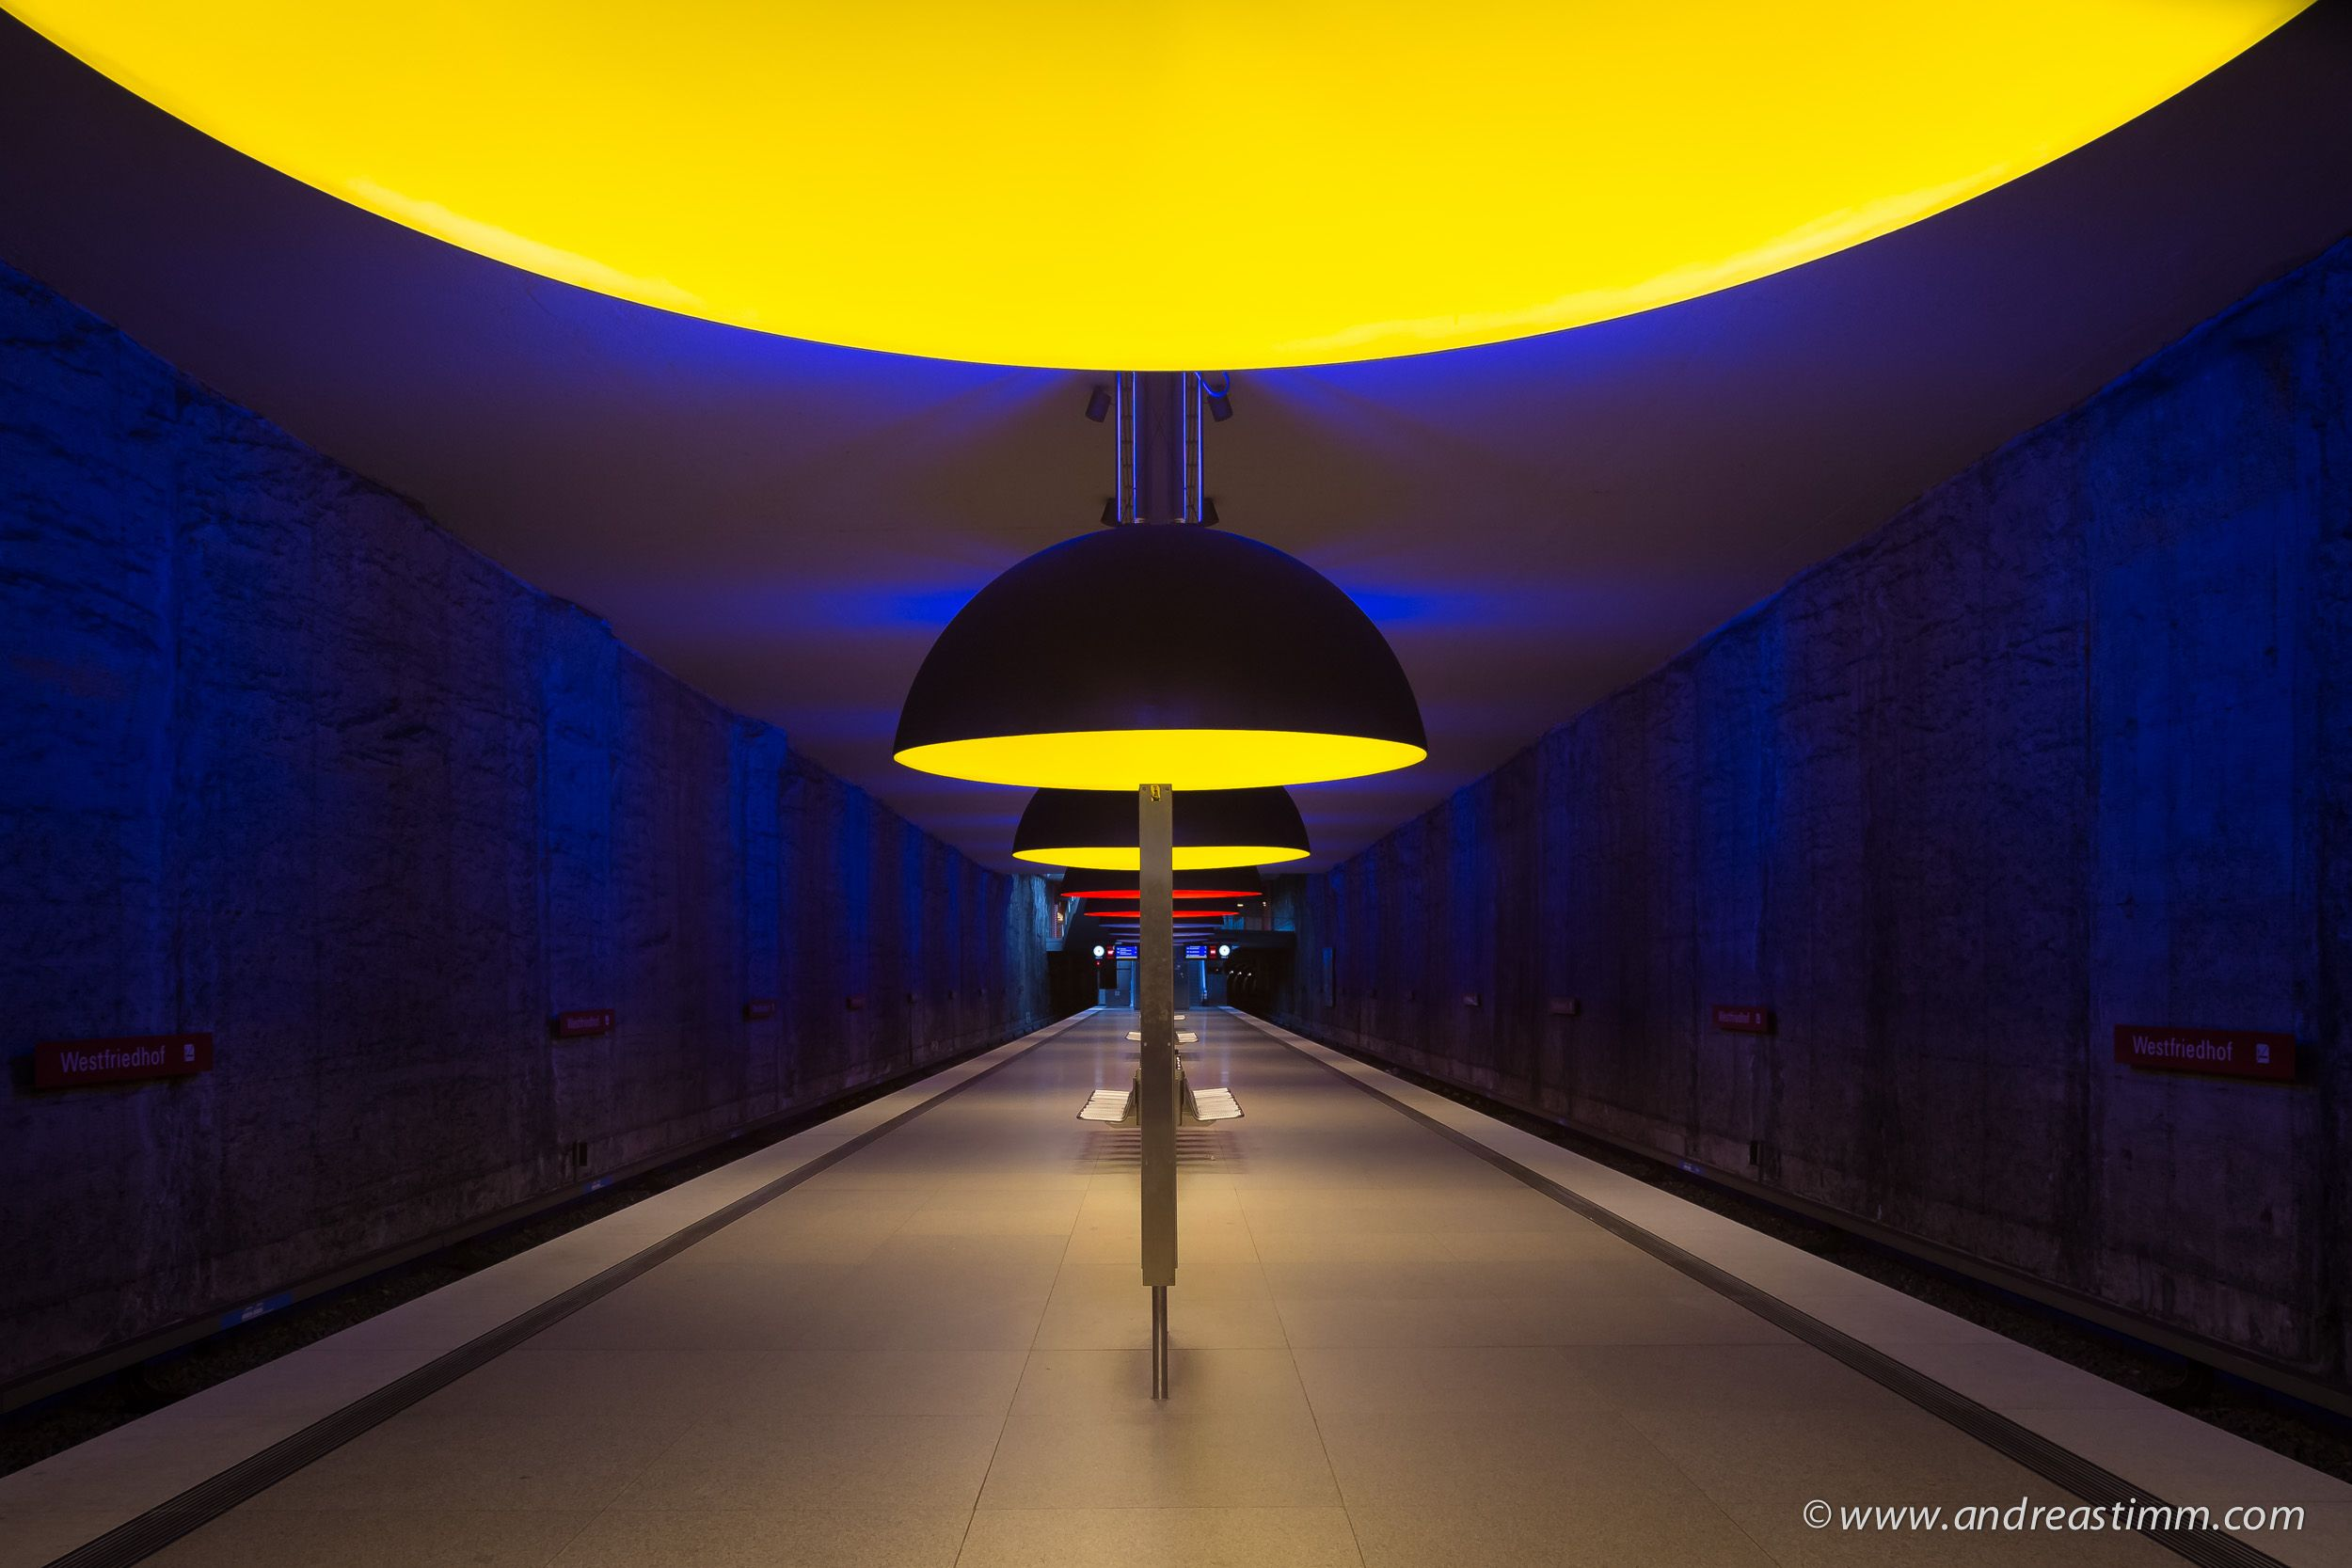 Munich Subway Station Westfriedhof - http://www.andreastimm.com/photo-posts/architecture/munich-subway-station-westfriedhof/